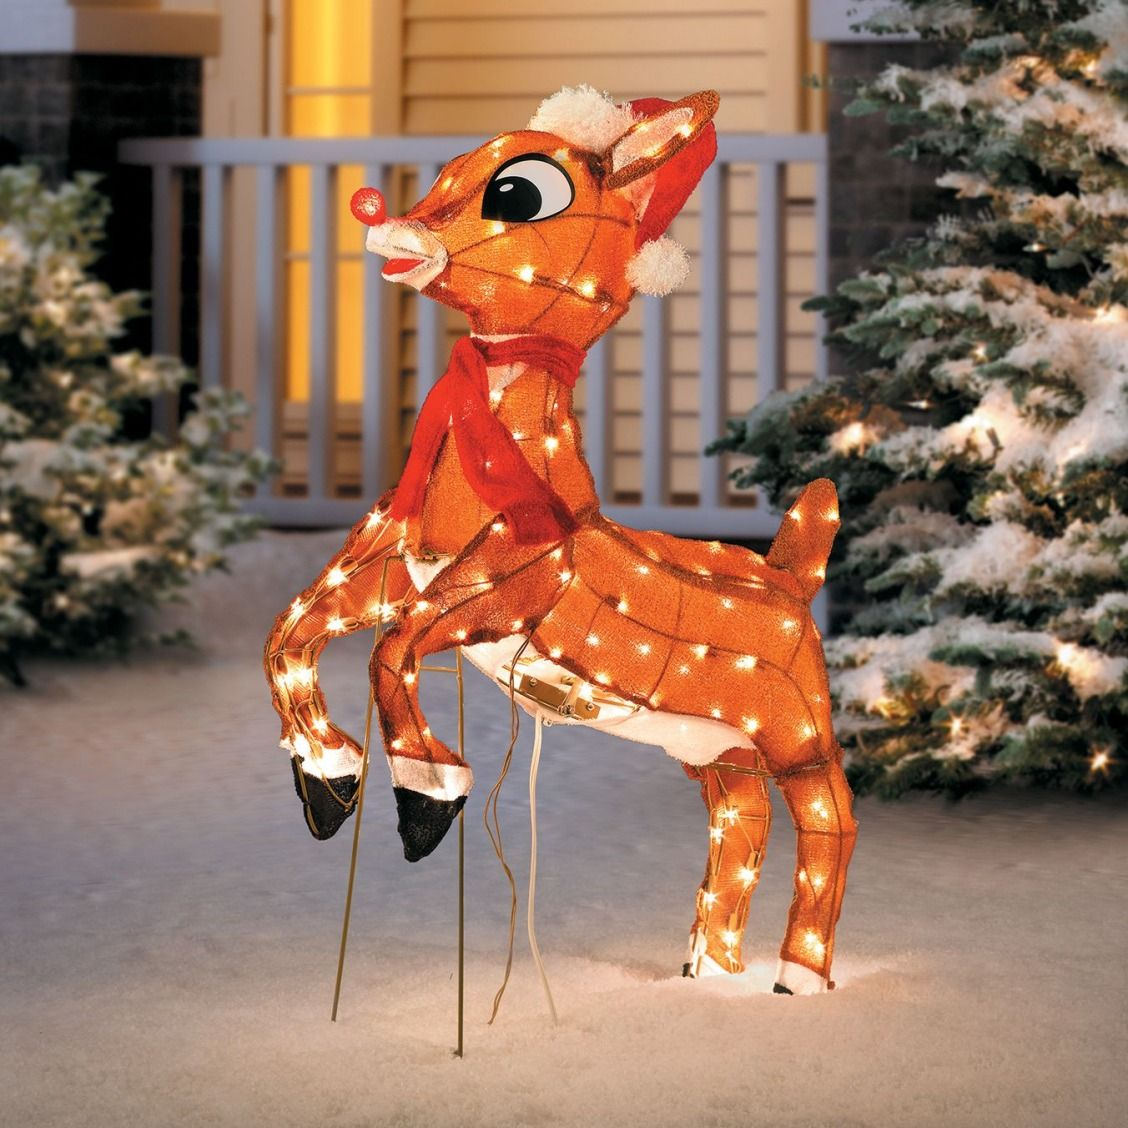 Rudolph Appears To Be Taking Off Into Flight In This Christmas Decoration Maybe He Outdoor Christmas Reindeer Outdoor Christmas Christmas Reindeer Decorations